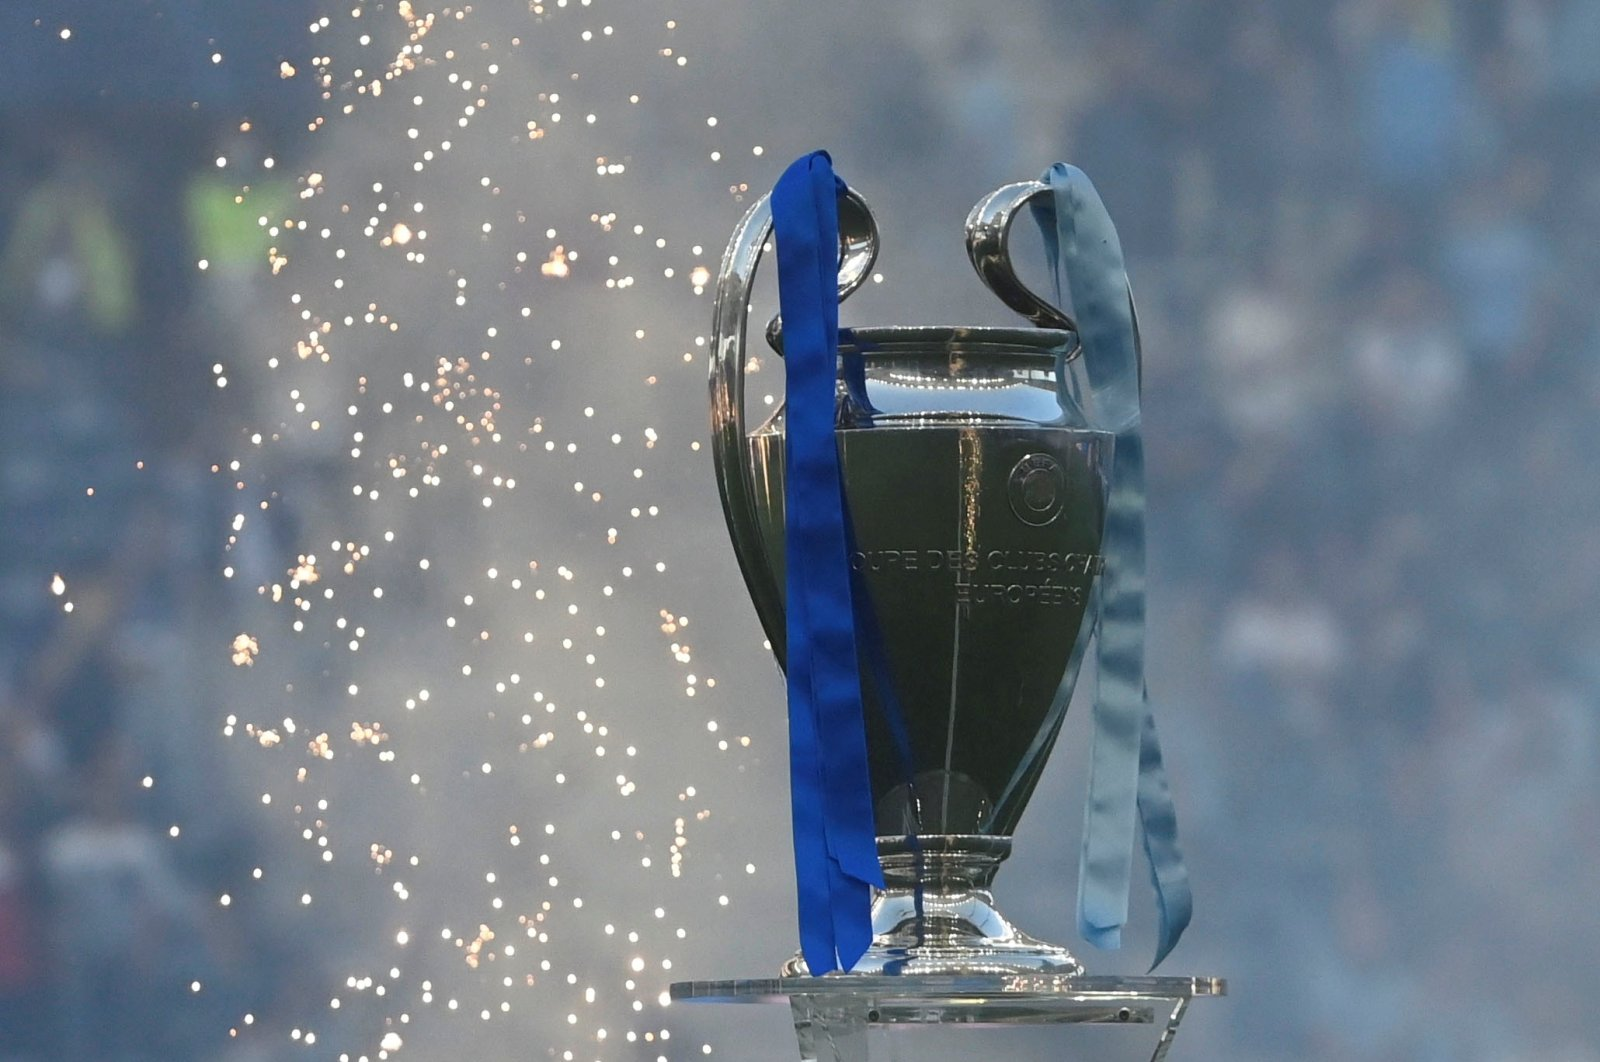 Champions League trophy is seen at the Estadio do Dragao in Porto, Portugal, May 29, 2021. (Reuters Photo)